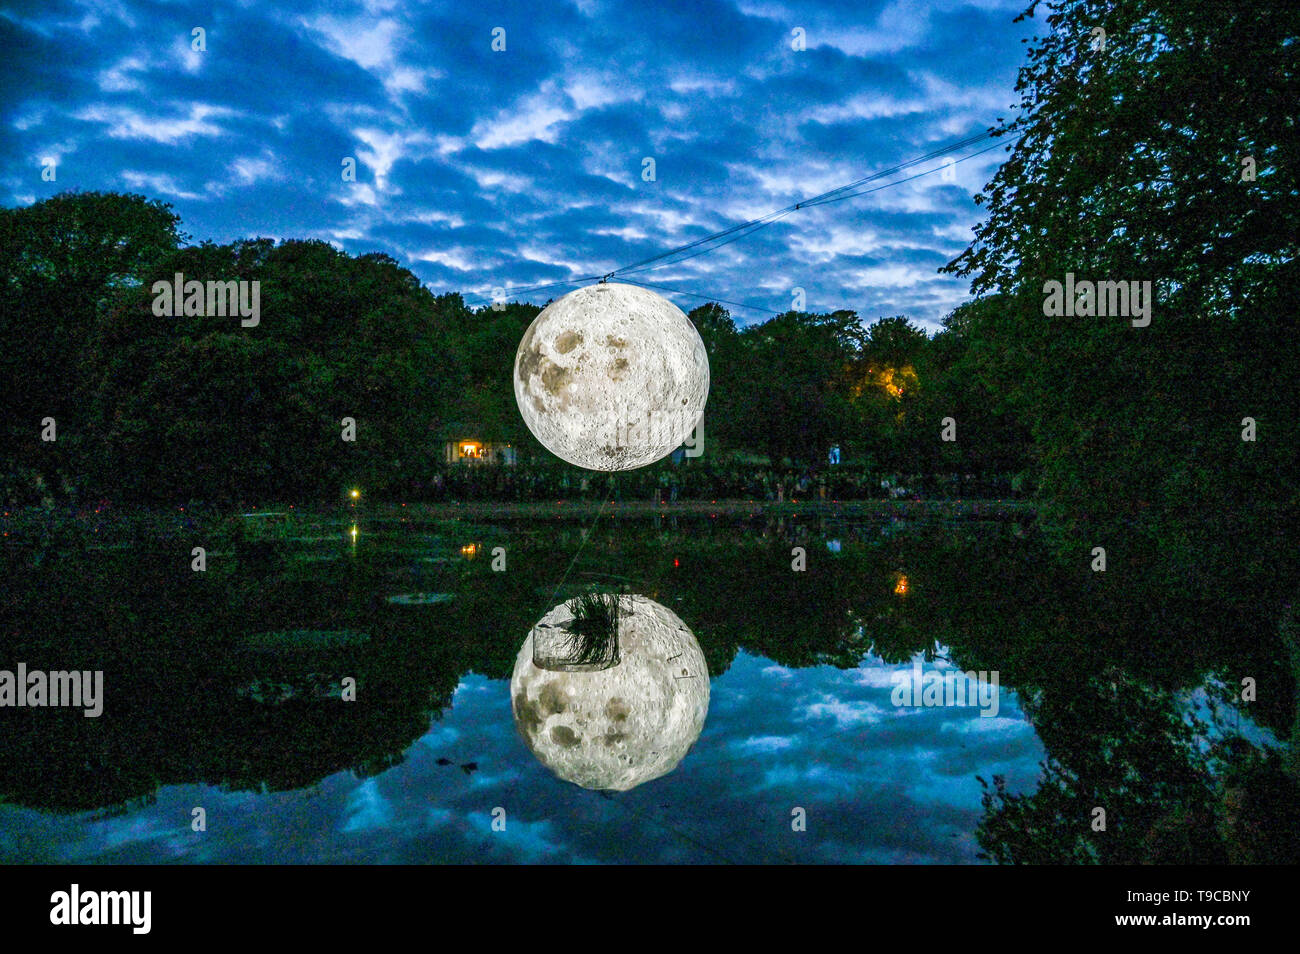 Brighton UK 30th April 2019 - Crowds gathered around Queens Park pond in Brighton this evening to watch the Brighton Festival event 'Museum of the Moon' by artist Luke Jerram . The moon will be lit up over the weekend accompanied by music by composer Dan Jones . - Stock Image